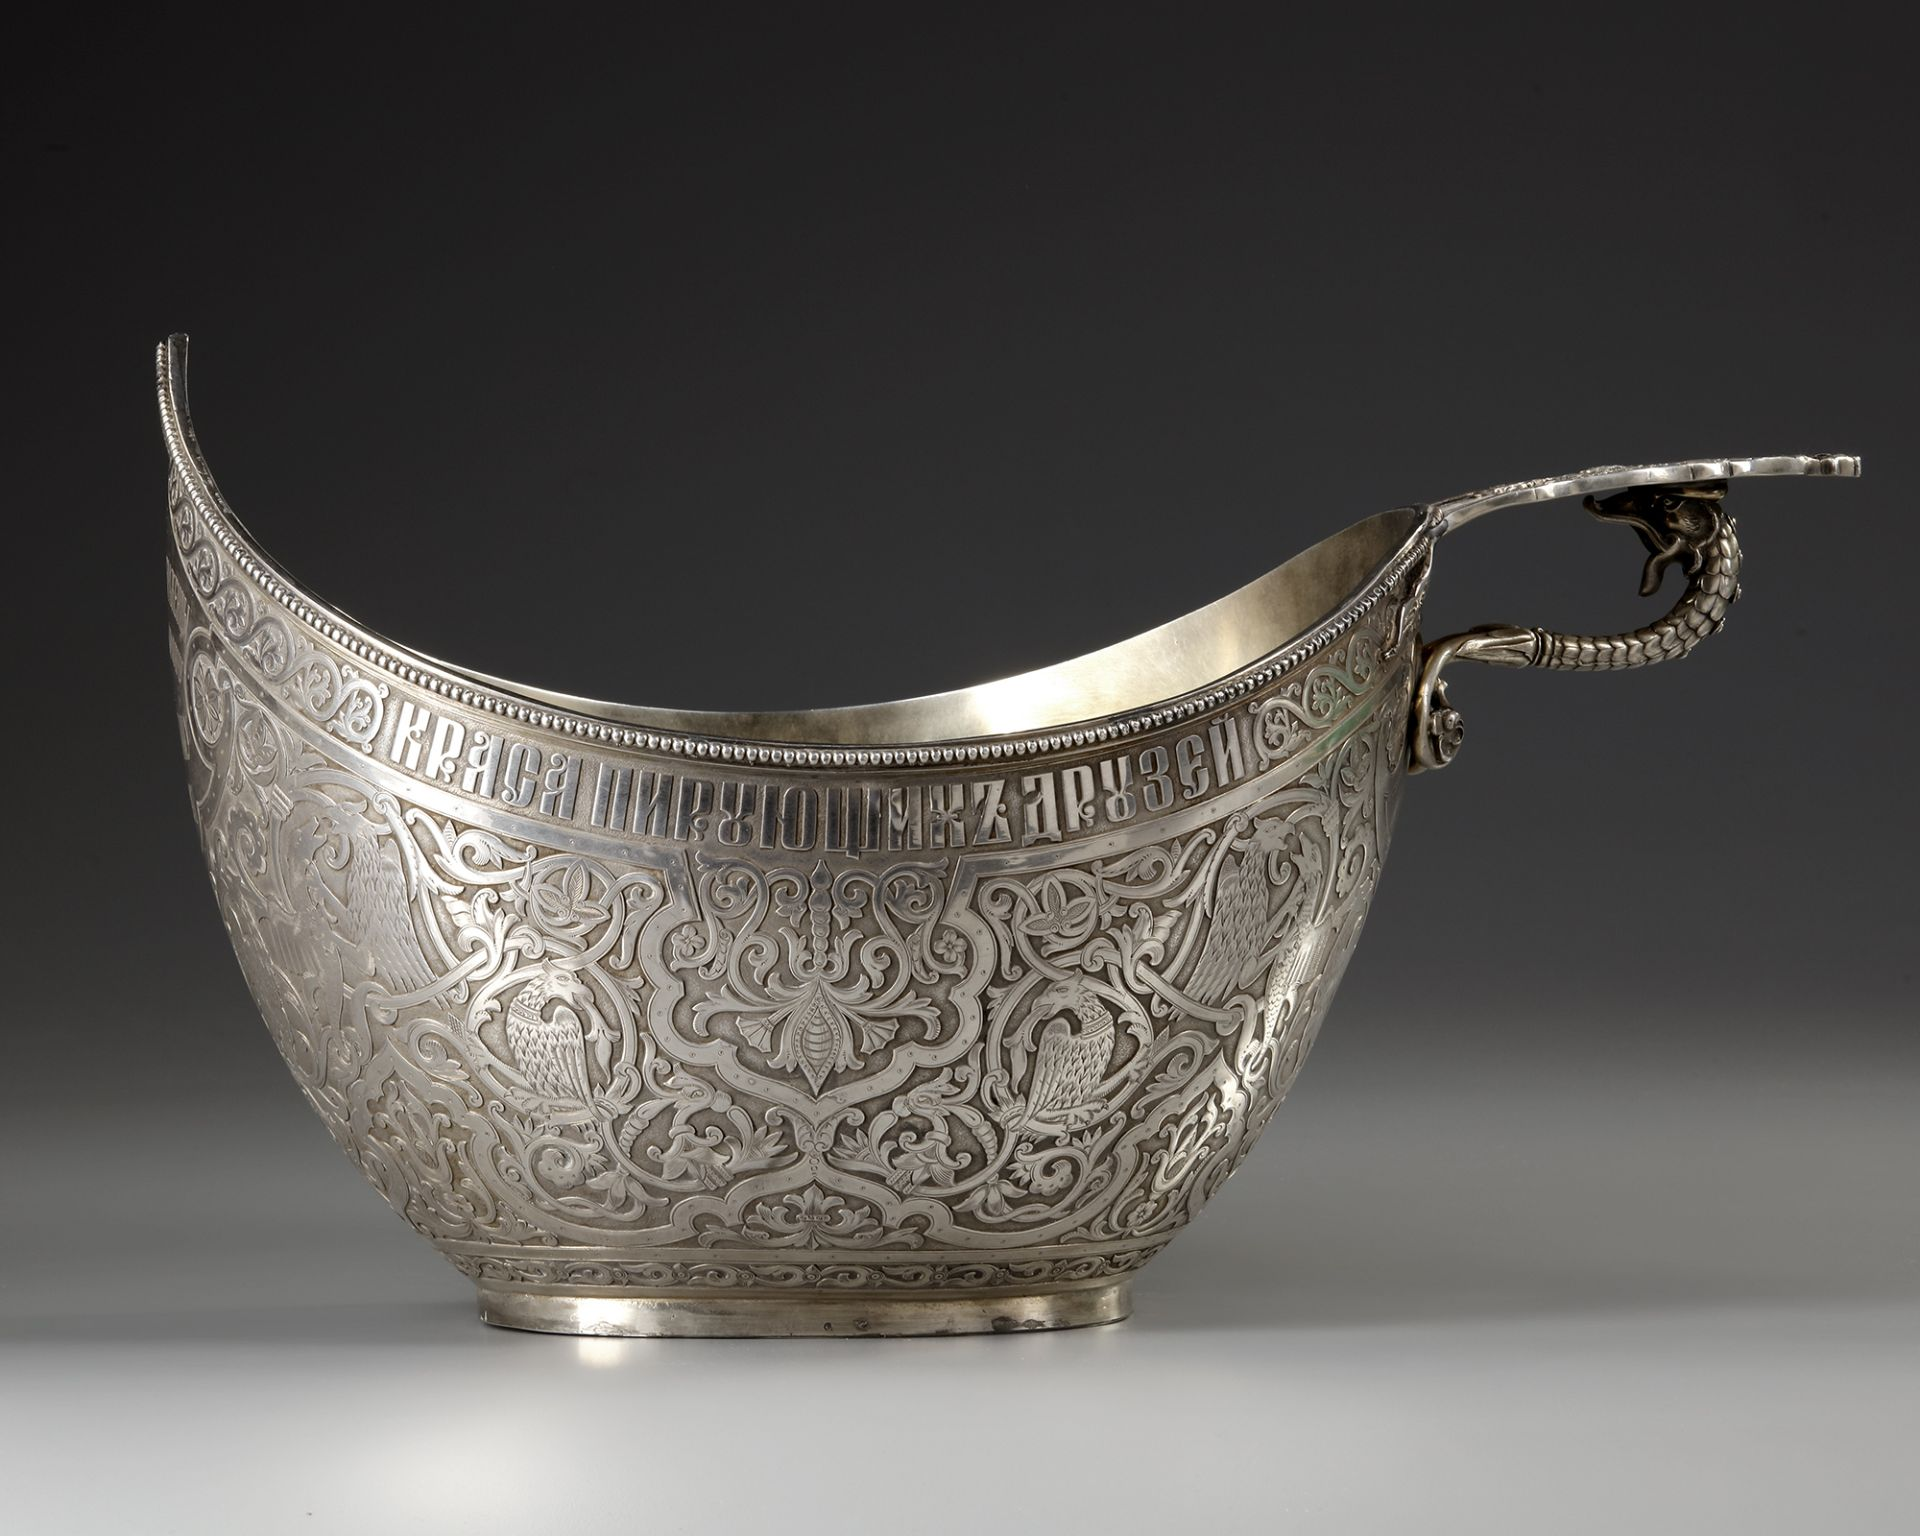 A LARGE RUSSIAN IMPERIAL SILVER KOVSCH BOWL, LATE 19TH CENTURY